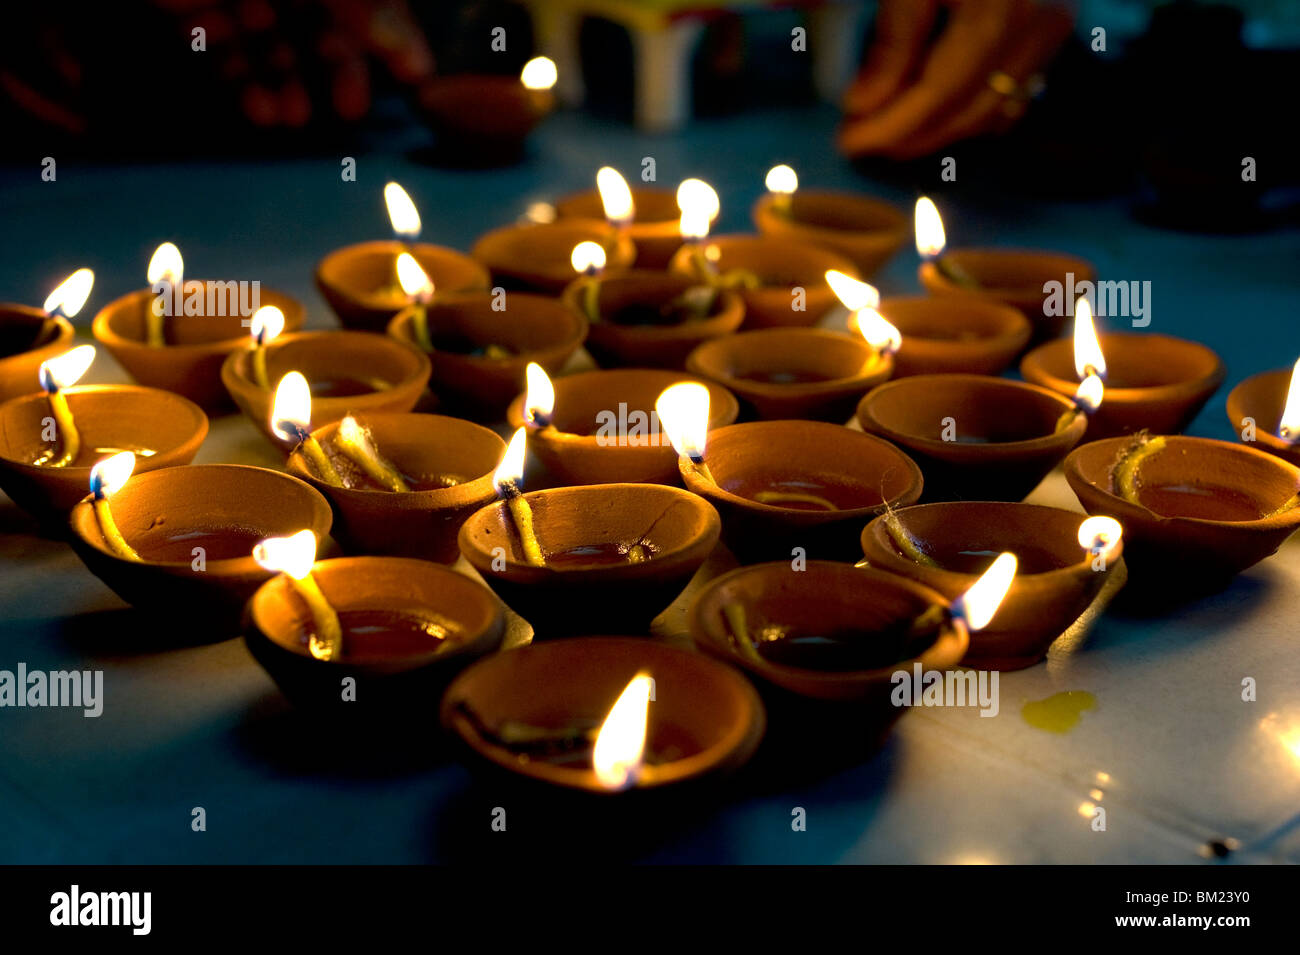 Deepak lights (oil and cotton wick candles) lit for domestic decoration to celebrate the Diwali festival, India - Stock Image